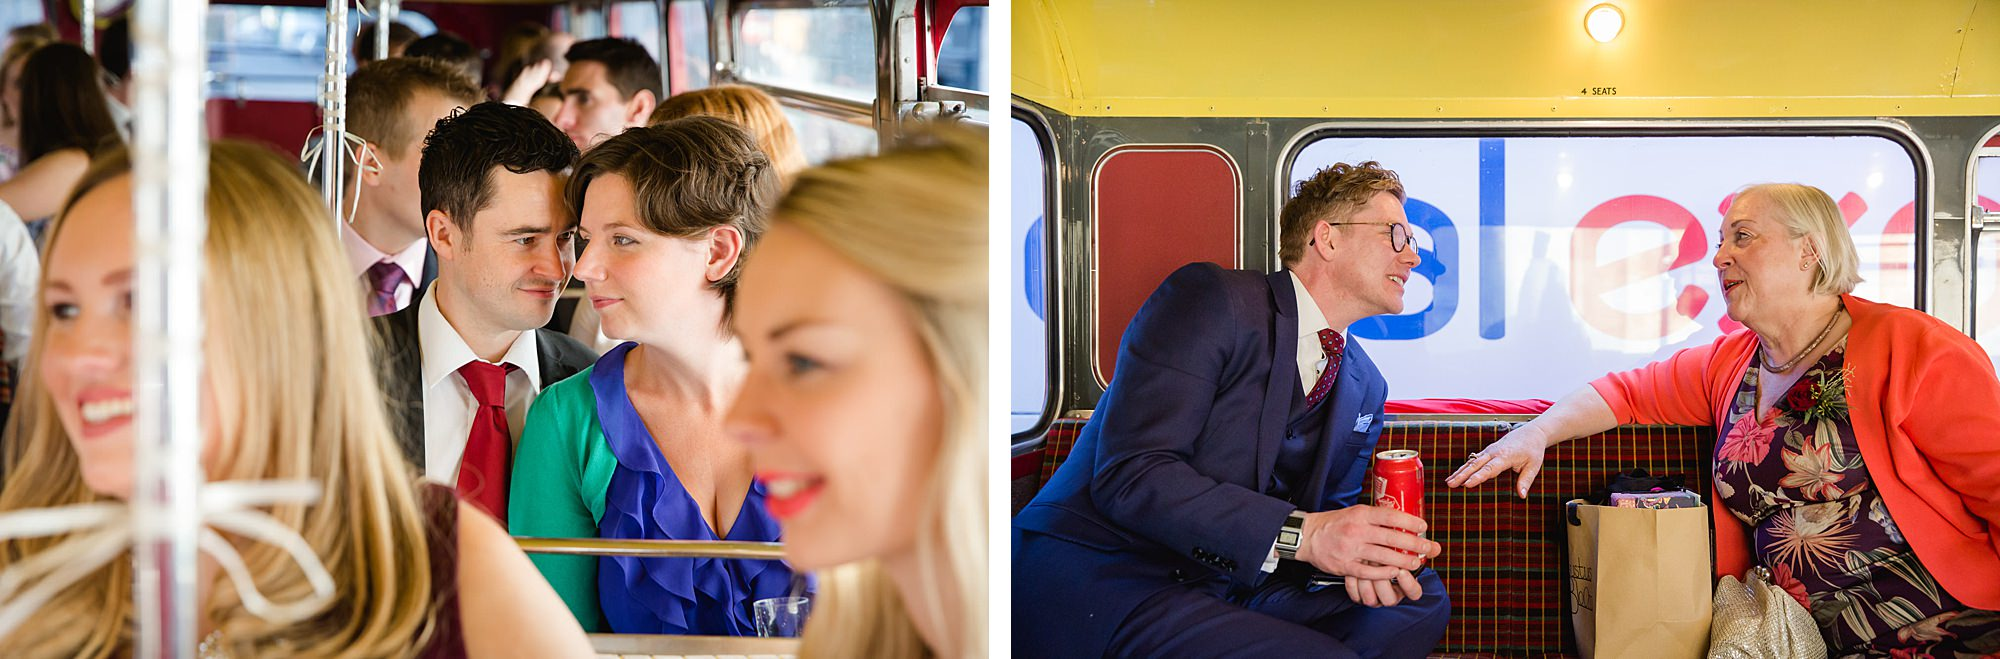 wedding guests chatting on a bus